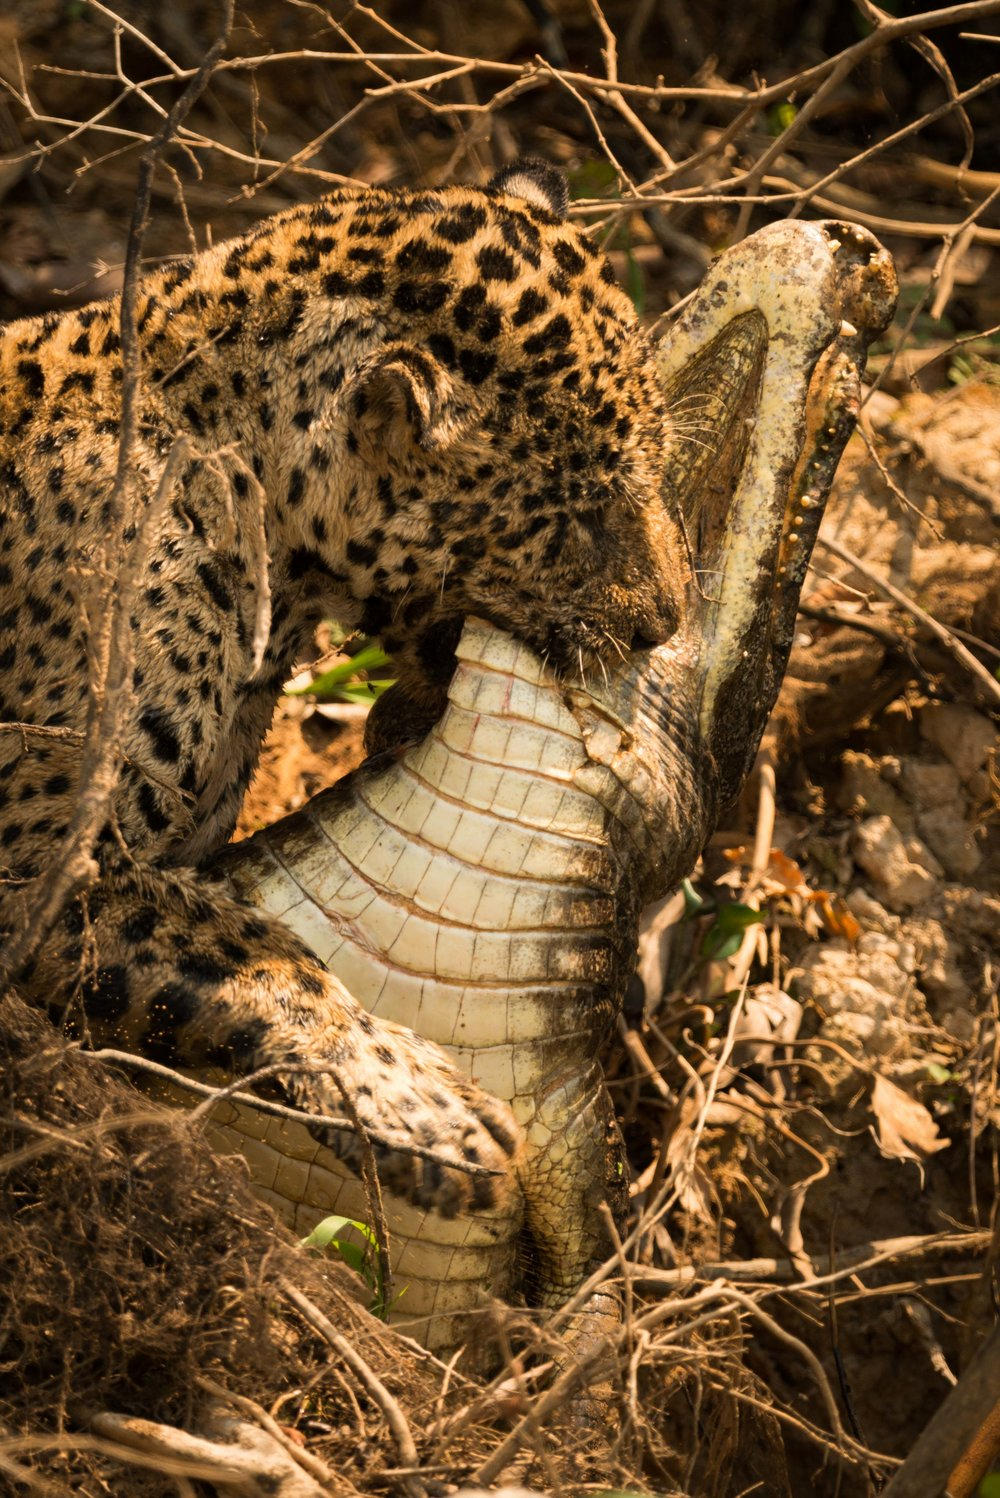 Jaguar dragging dead yacare caiman through branches